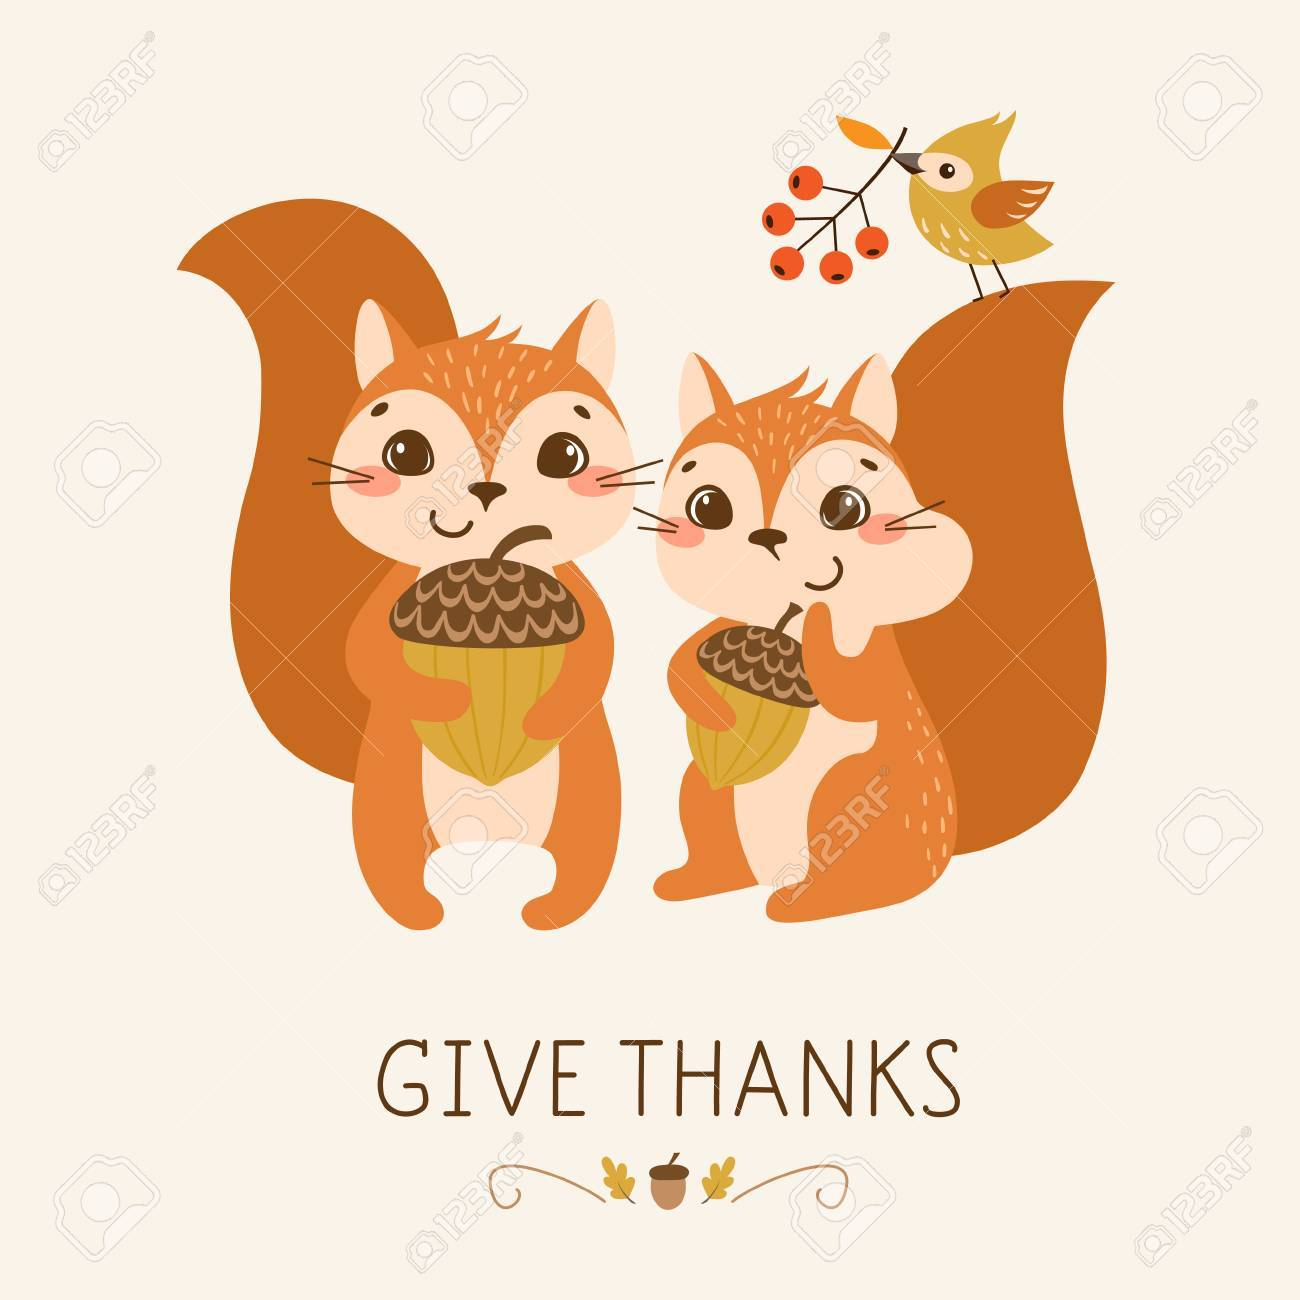 Thanksgiving greeting card with cute and funny squirrels. - 64887747